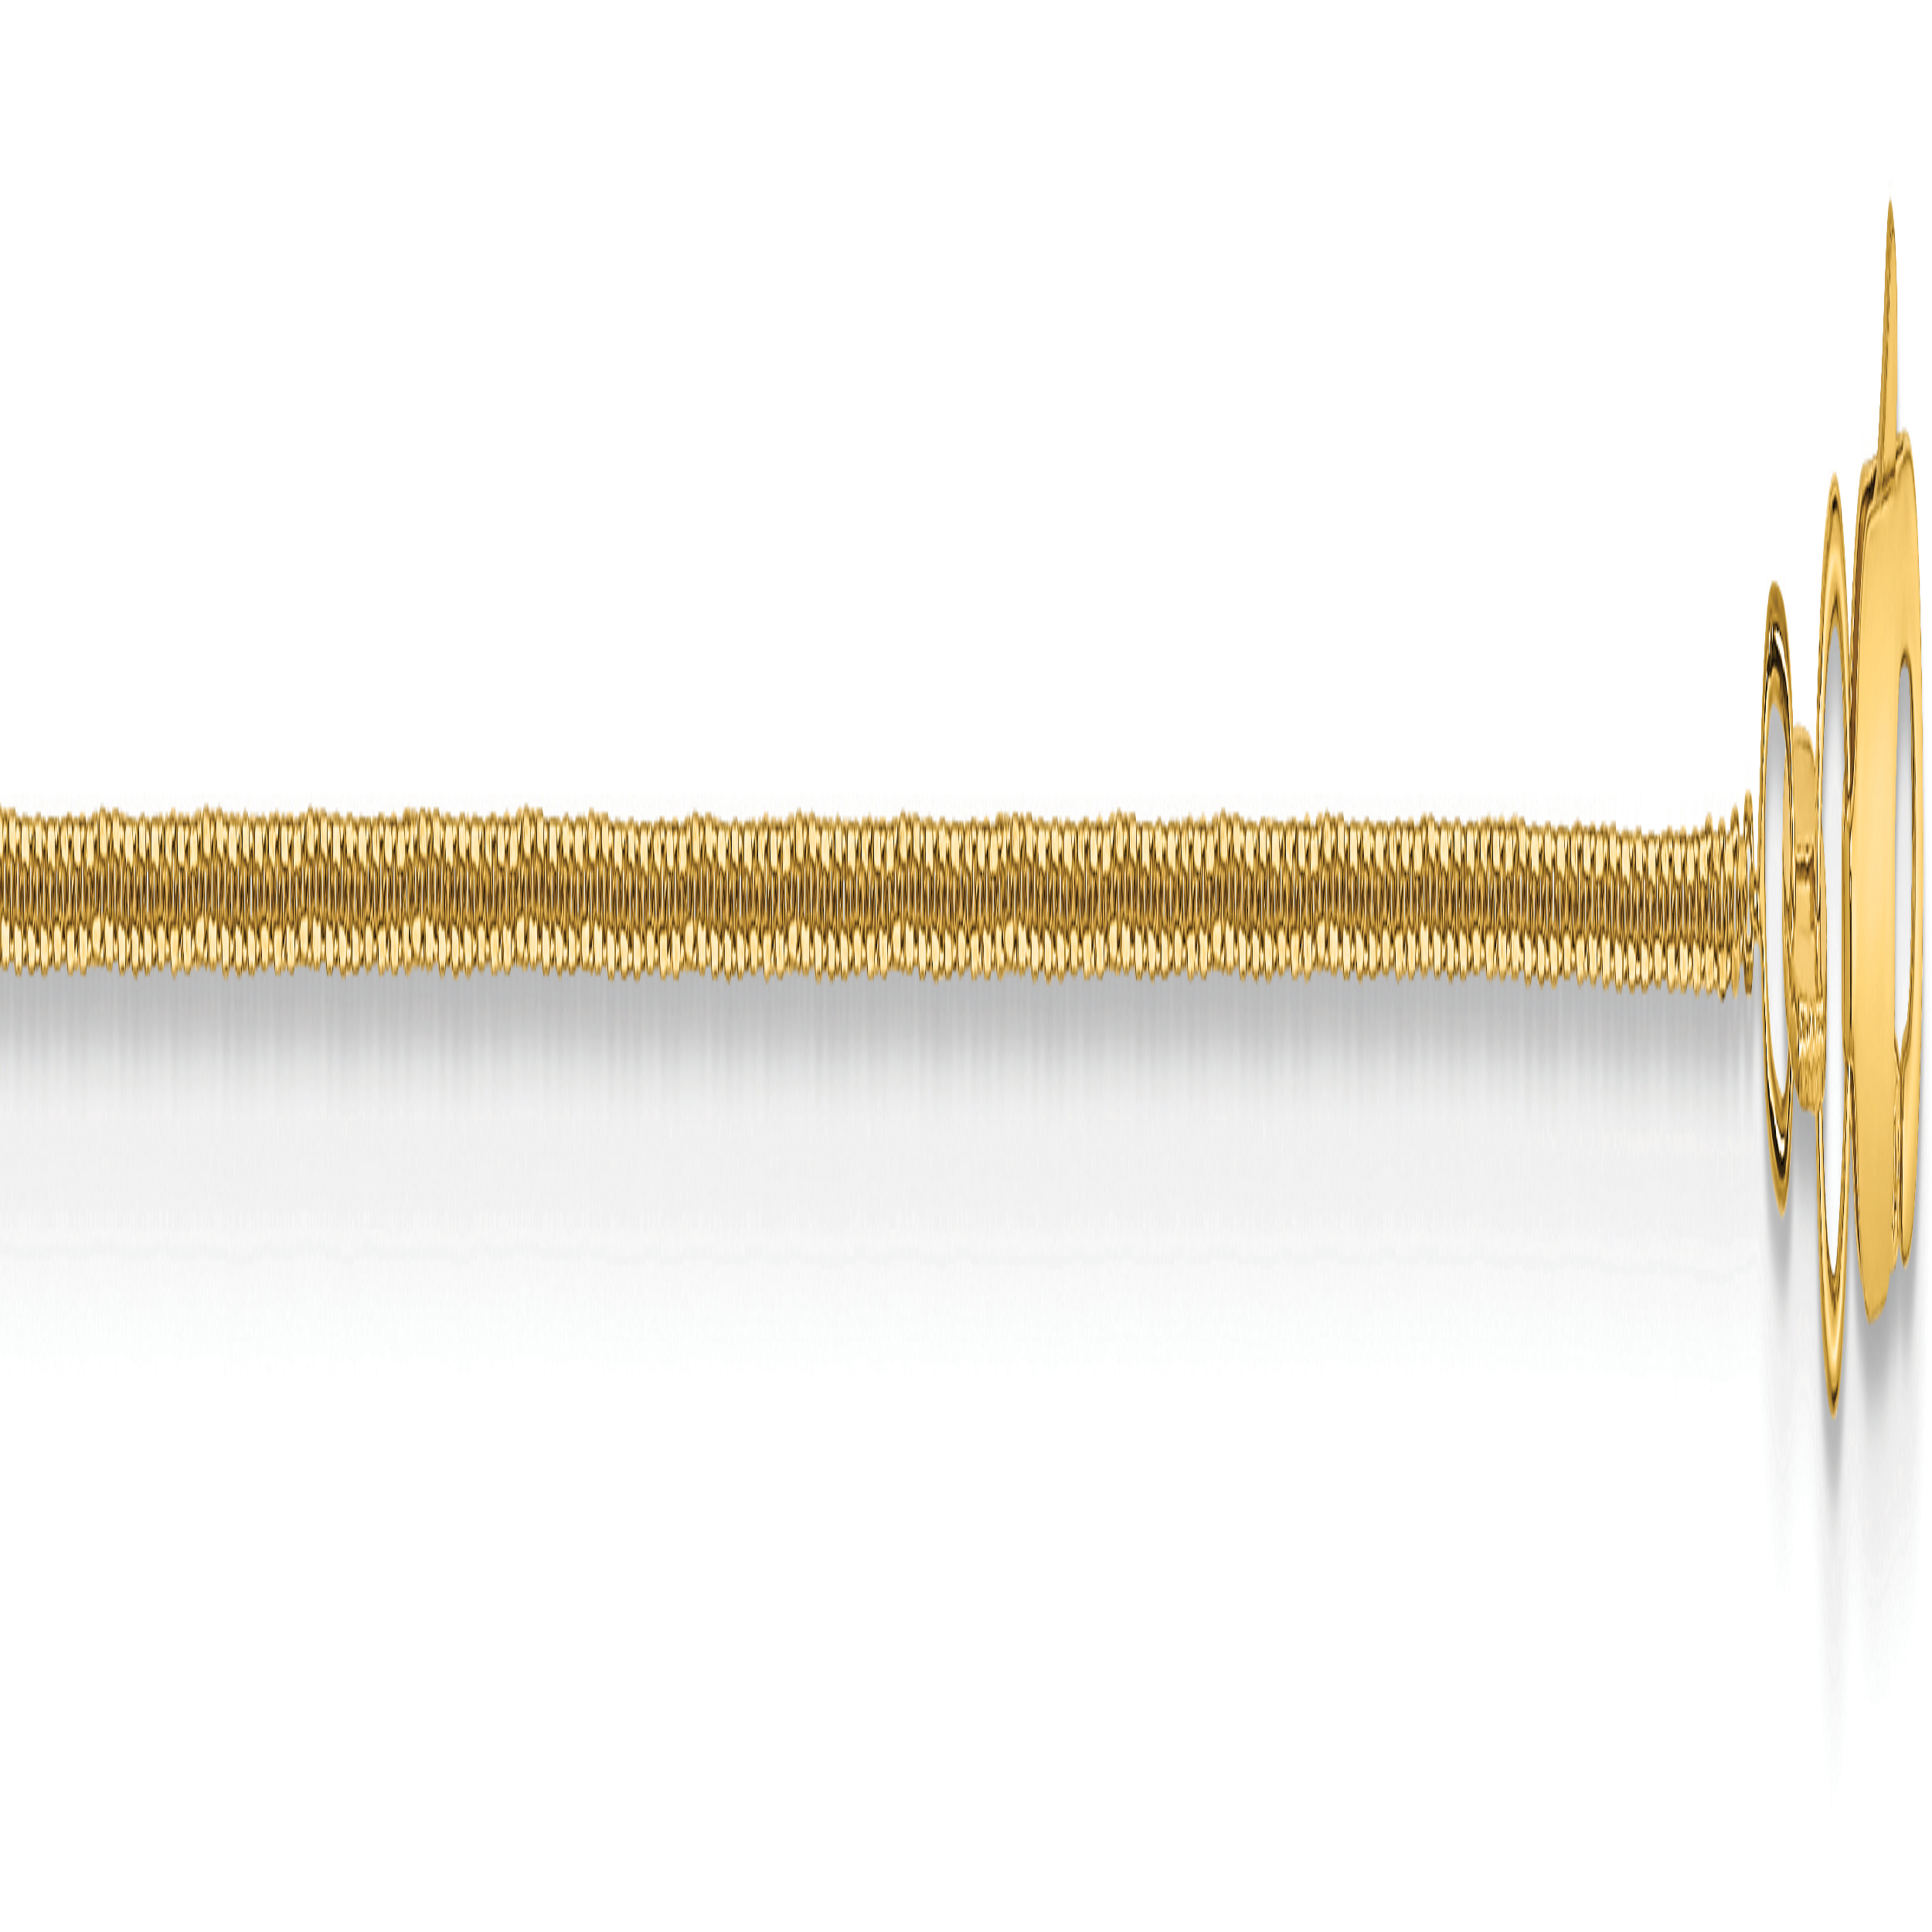 10k .80mm D/C Cable Chain. Weight: 1.03,  Length: 16